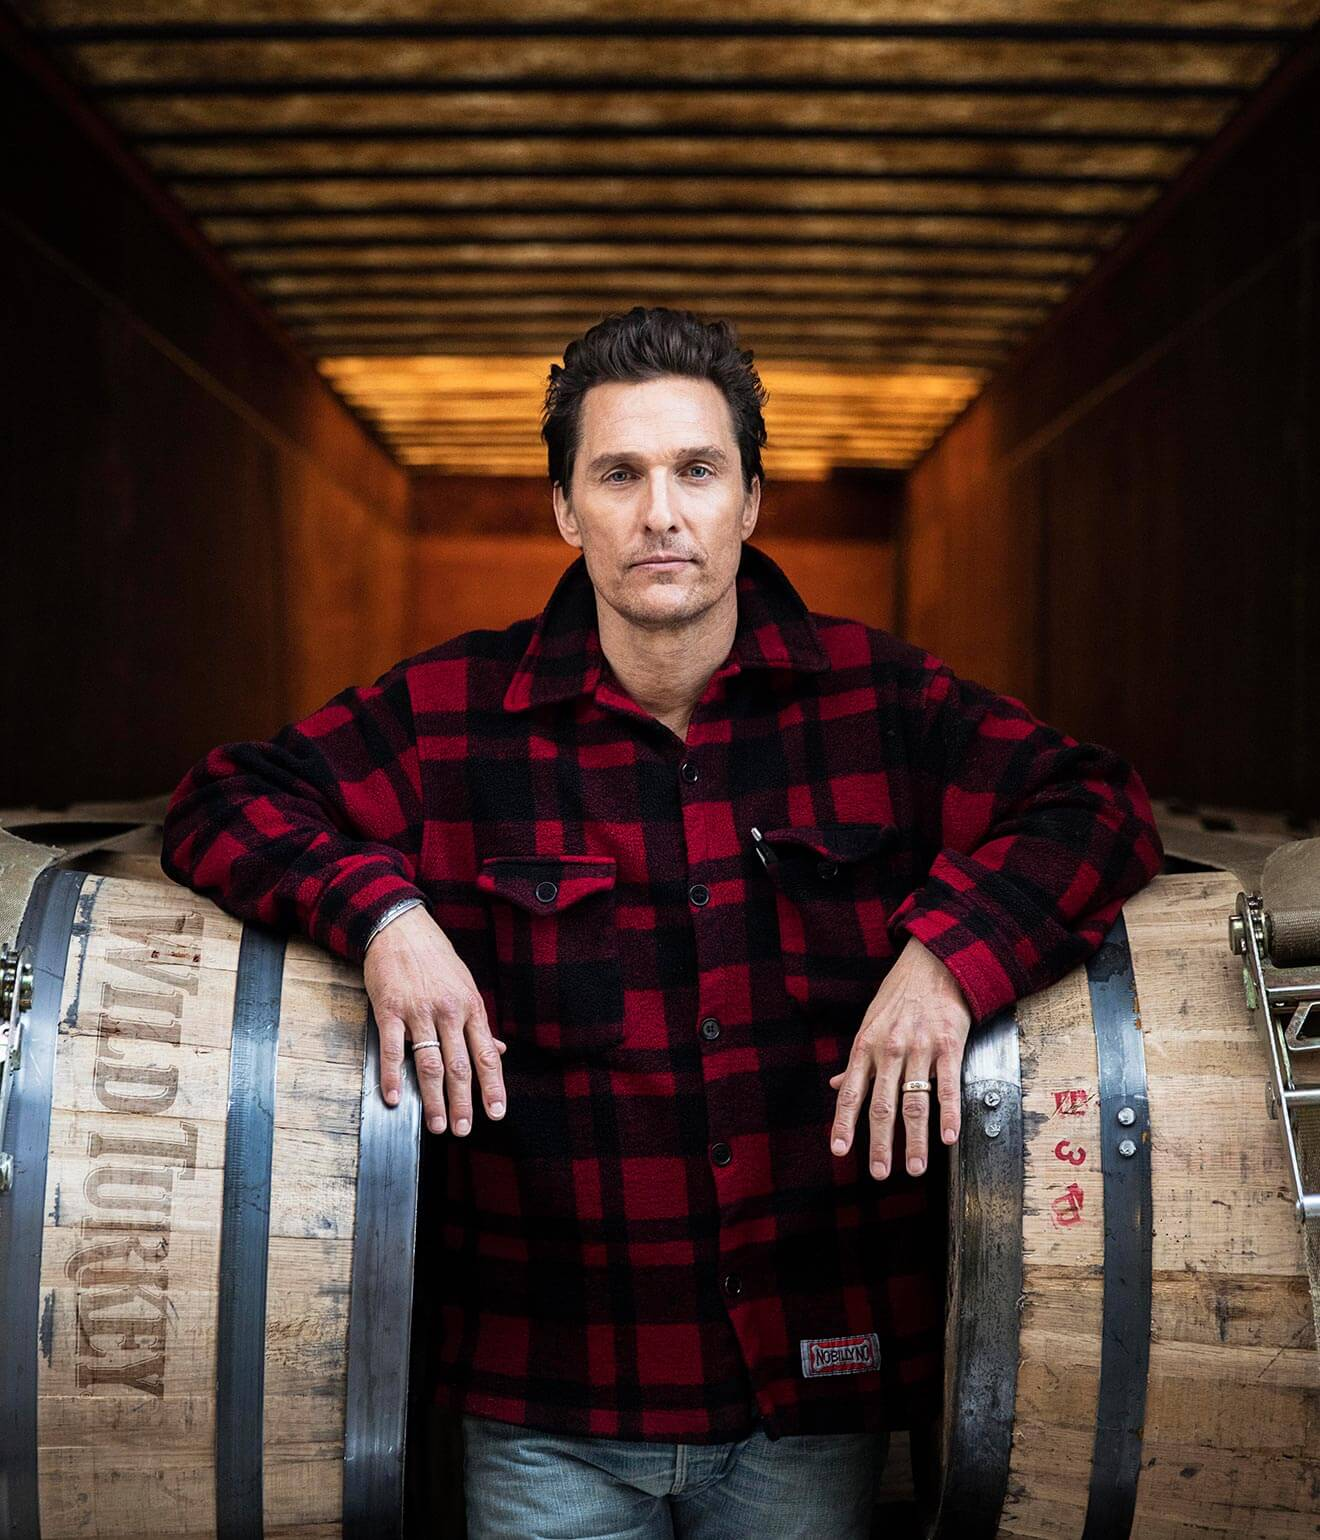 Wild Turkey Announces Matthew McConaughey as Creative Director